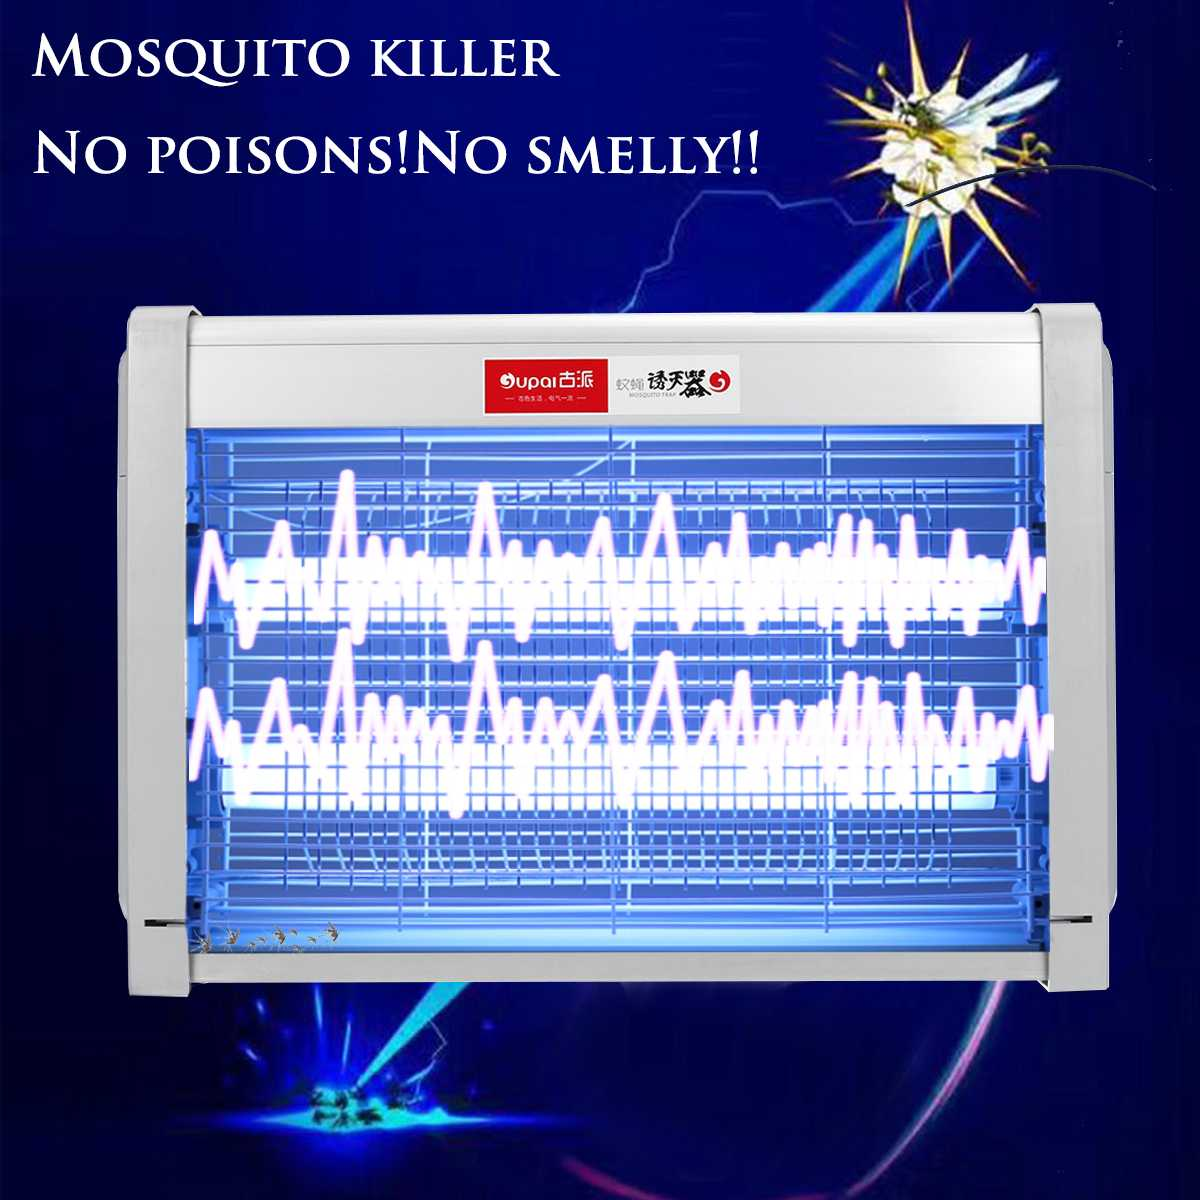 20W 220V Mosquito Killer Lamps LED Light Electronic Killer Trap Light Fly Wasp Bug Insect Zapper Trap Catcher Indoor Room Garden20W 220V Mosquito Killer Lamps LED Light Electronic Killer Trap Light Fly Wasp Bug Insect Zapper Trap Catcher Indoor Room Garden